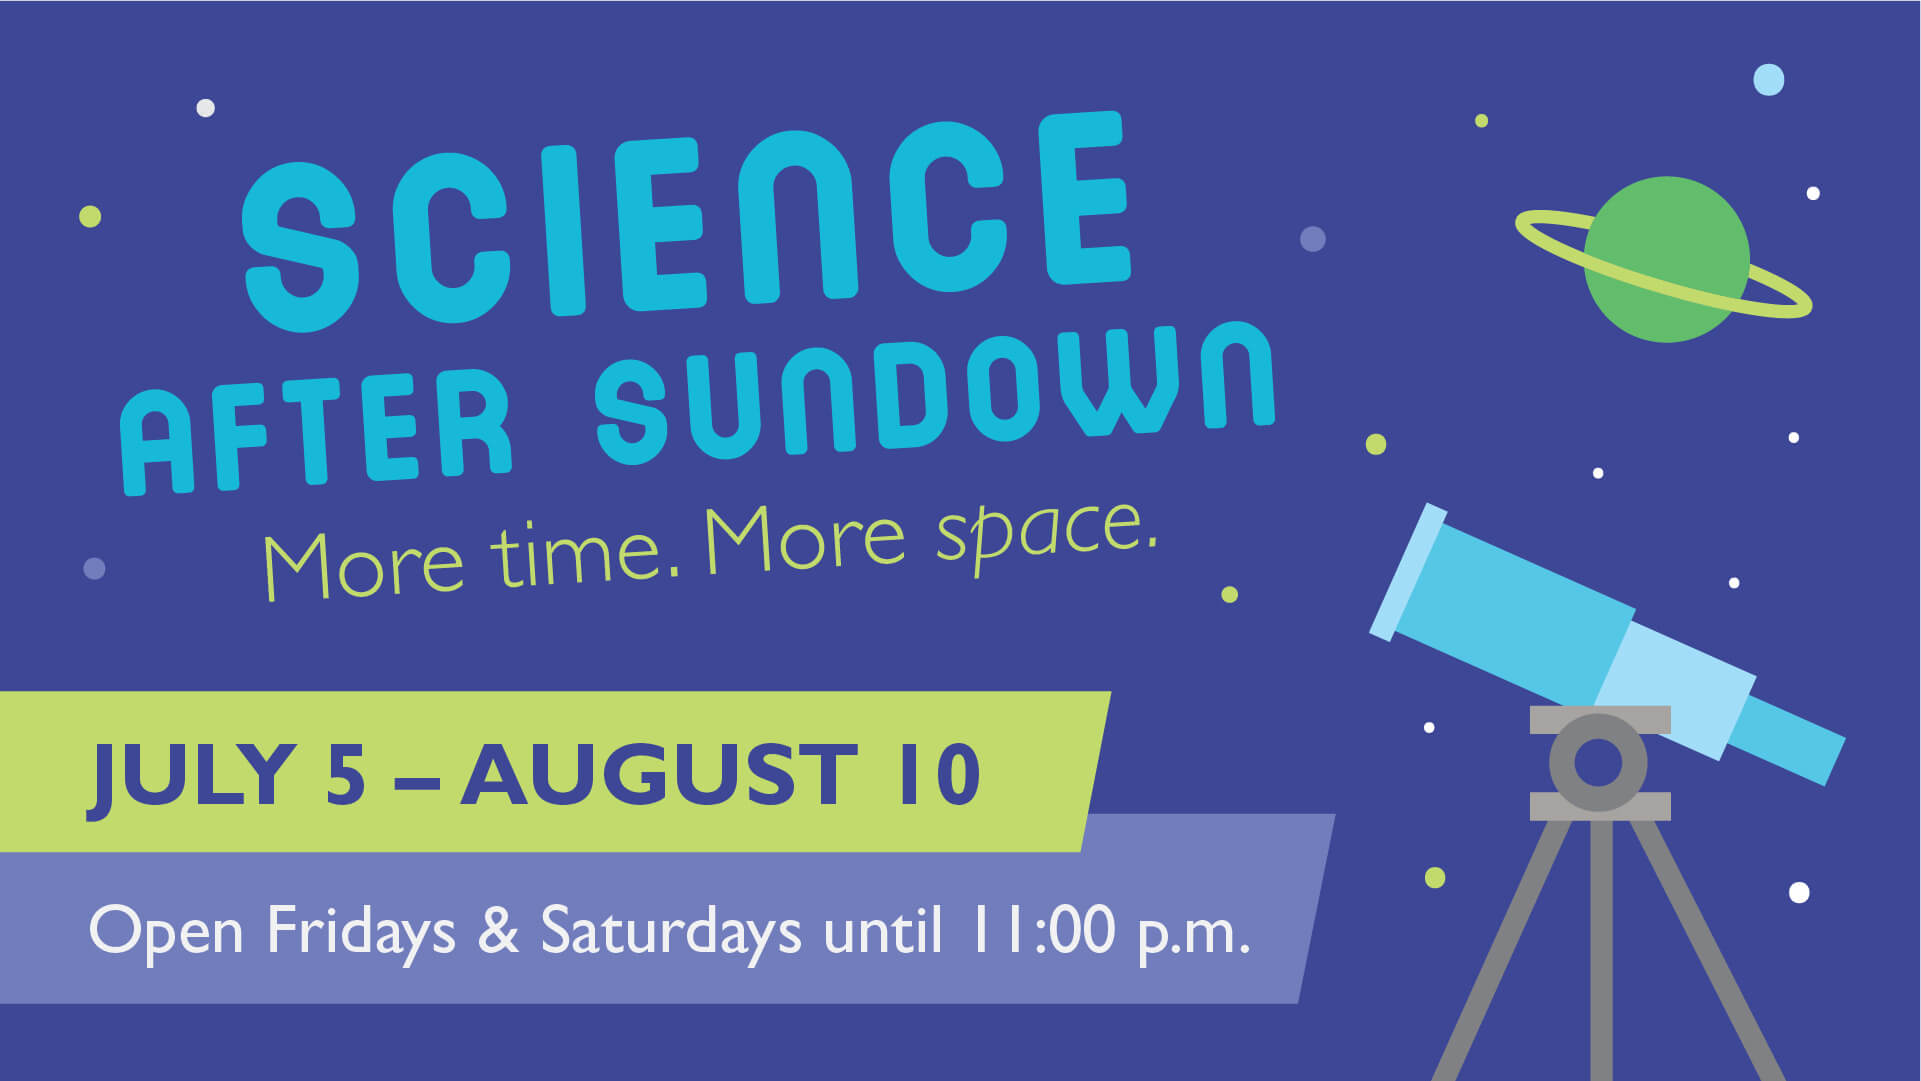 Science after sundown event